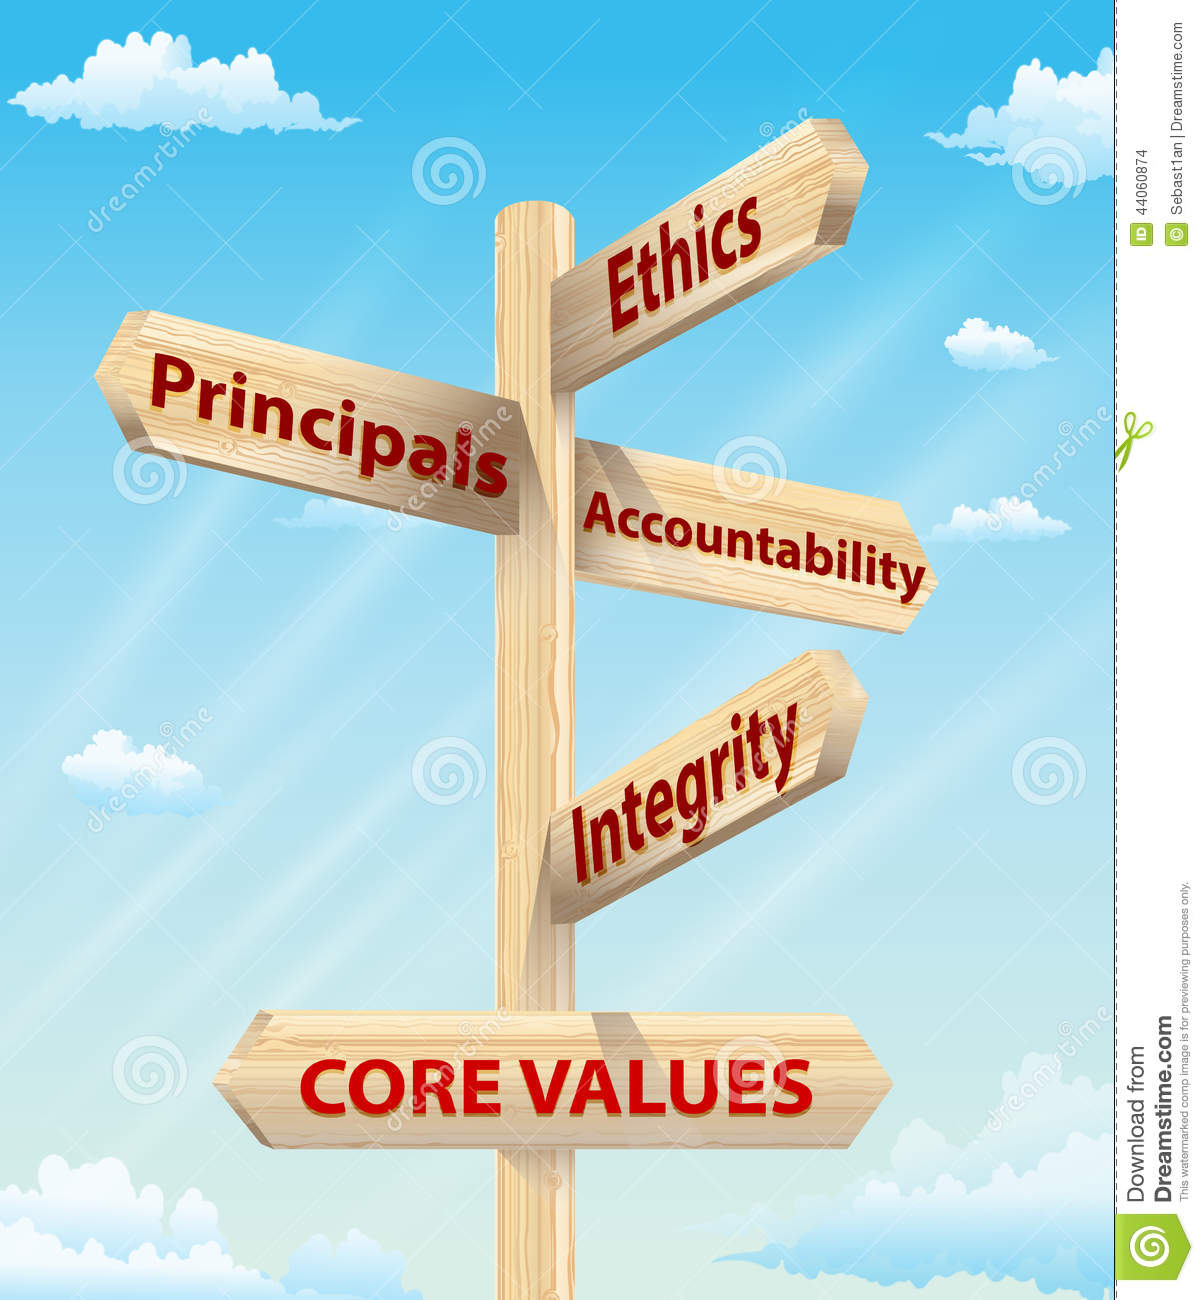 integrity core issues in ethics and Employers, business leaders and employees can benefit from integrity in the workplace integrity involves moral judgment and character, honesty and leadership values.